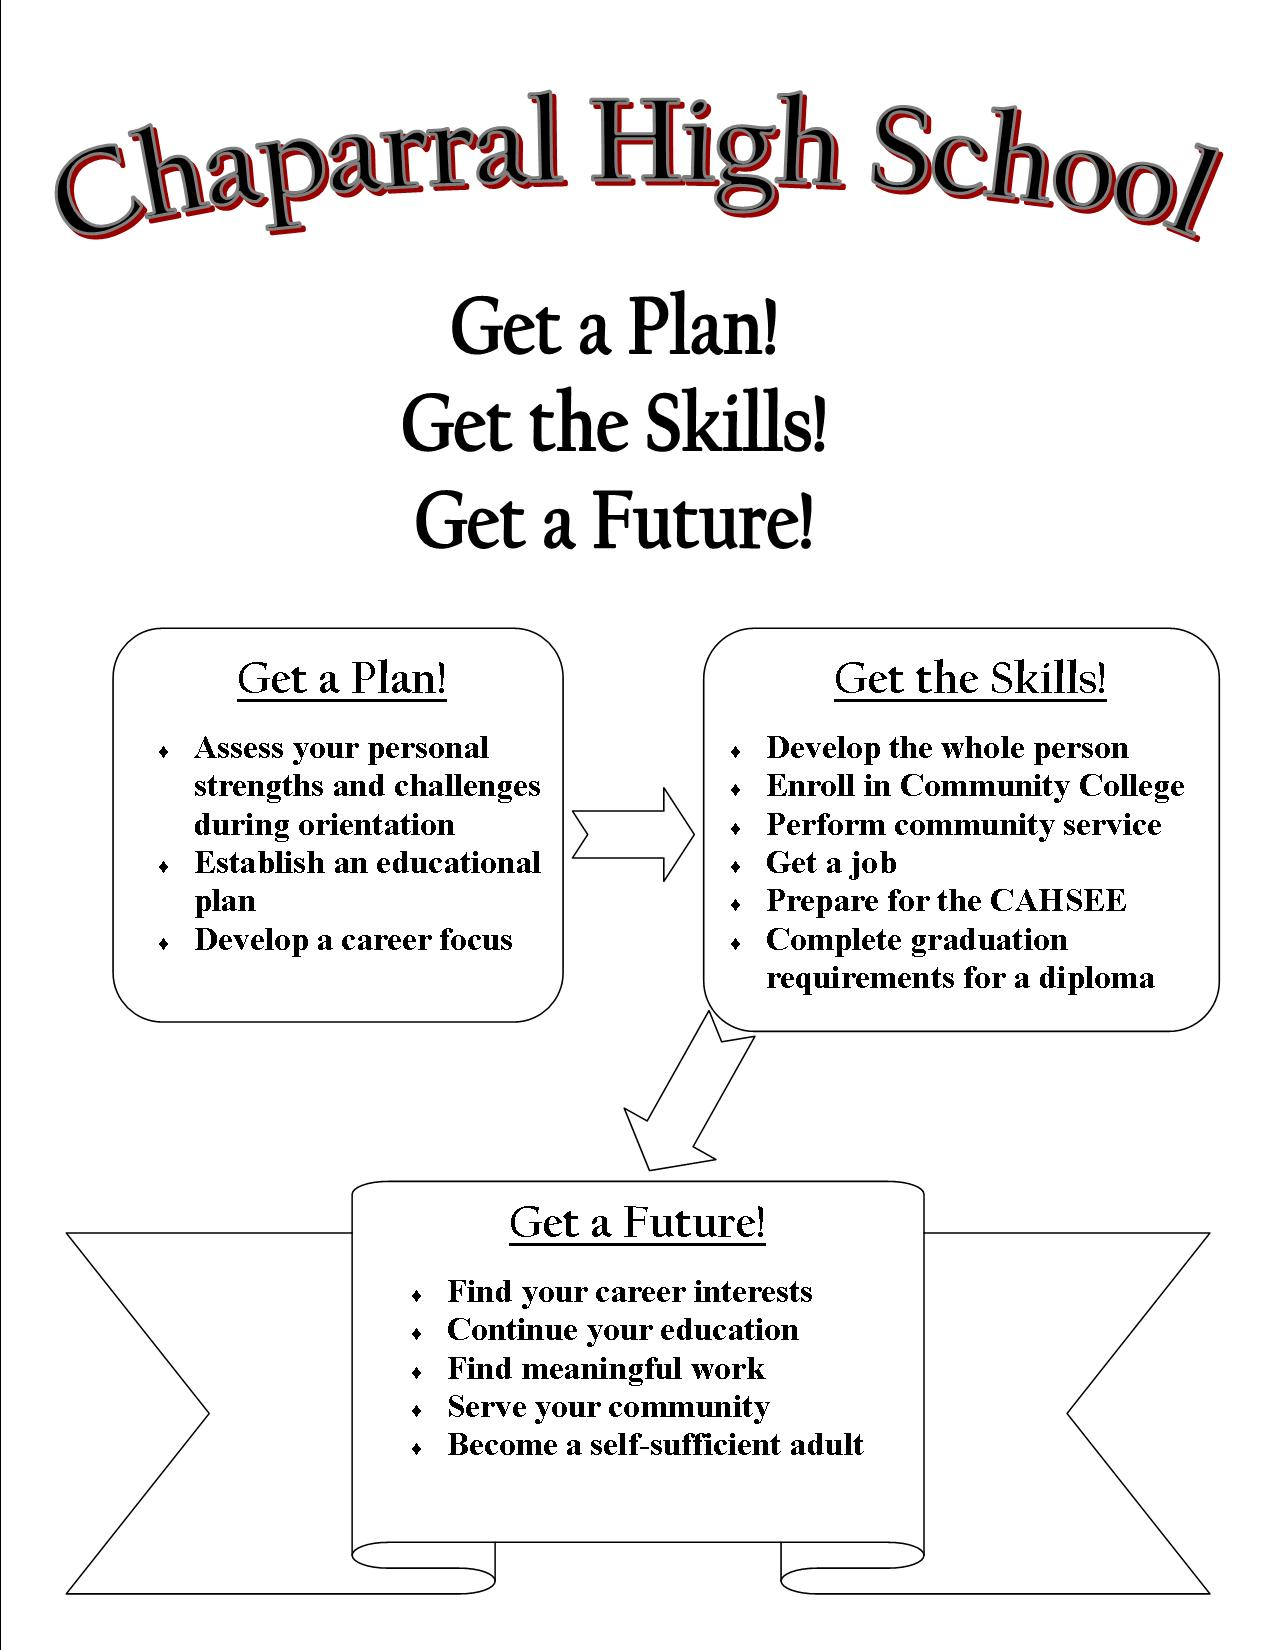 Chaparral High School, Get a Plan! Get the Skills! Get a Future!